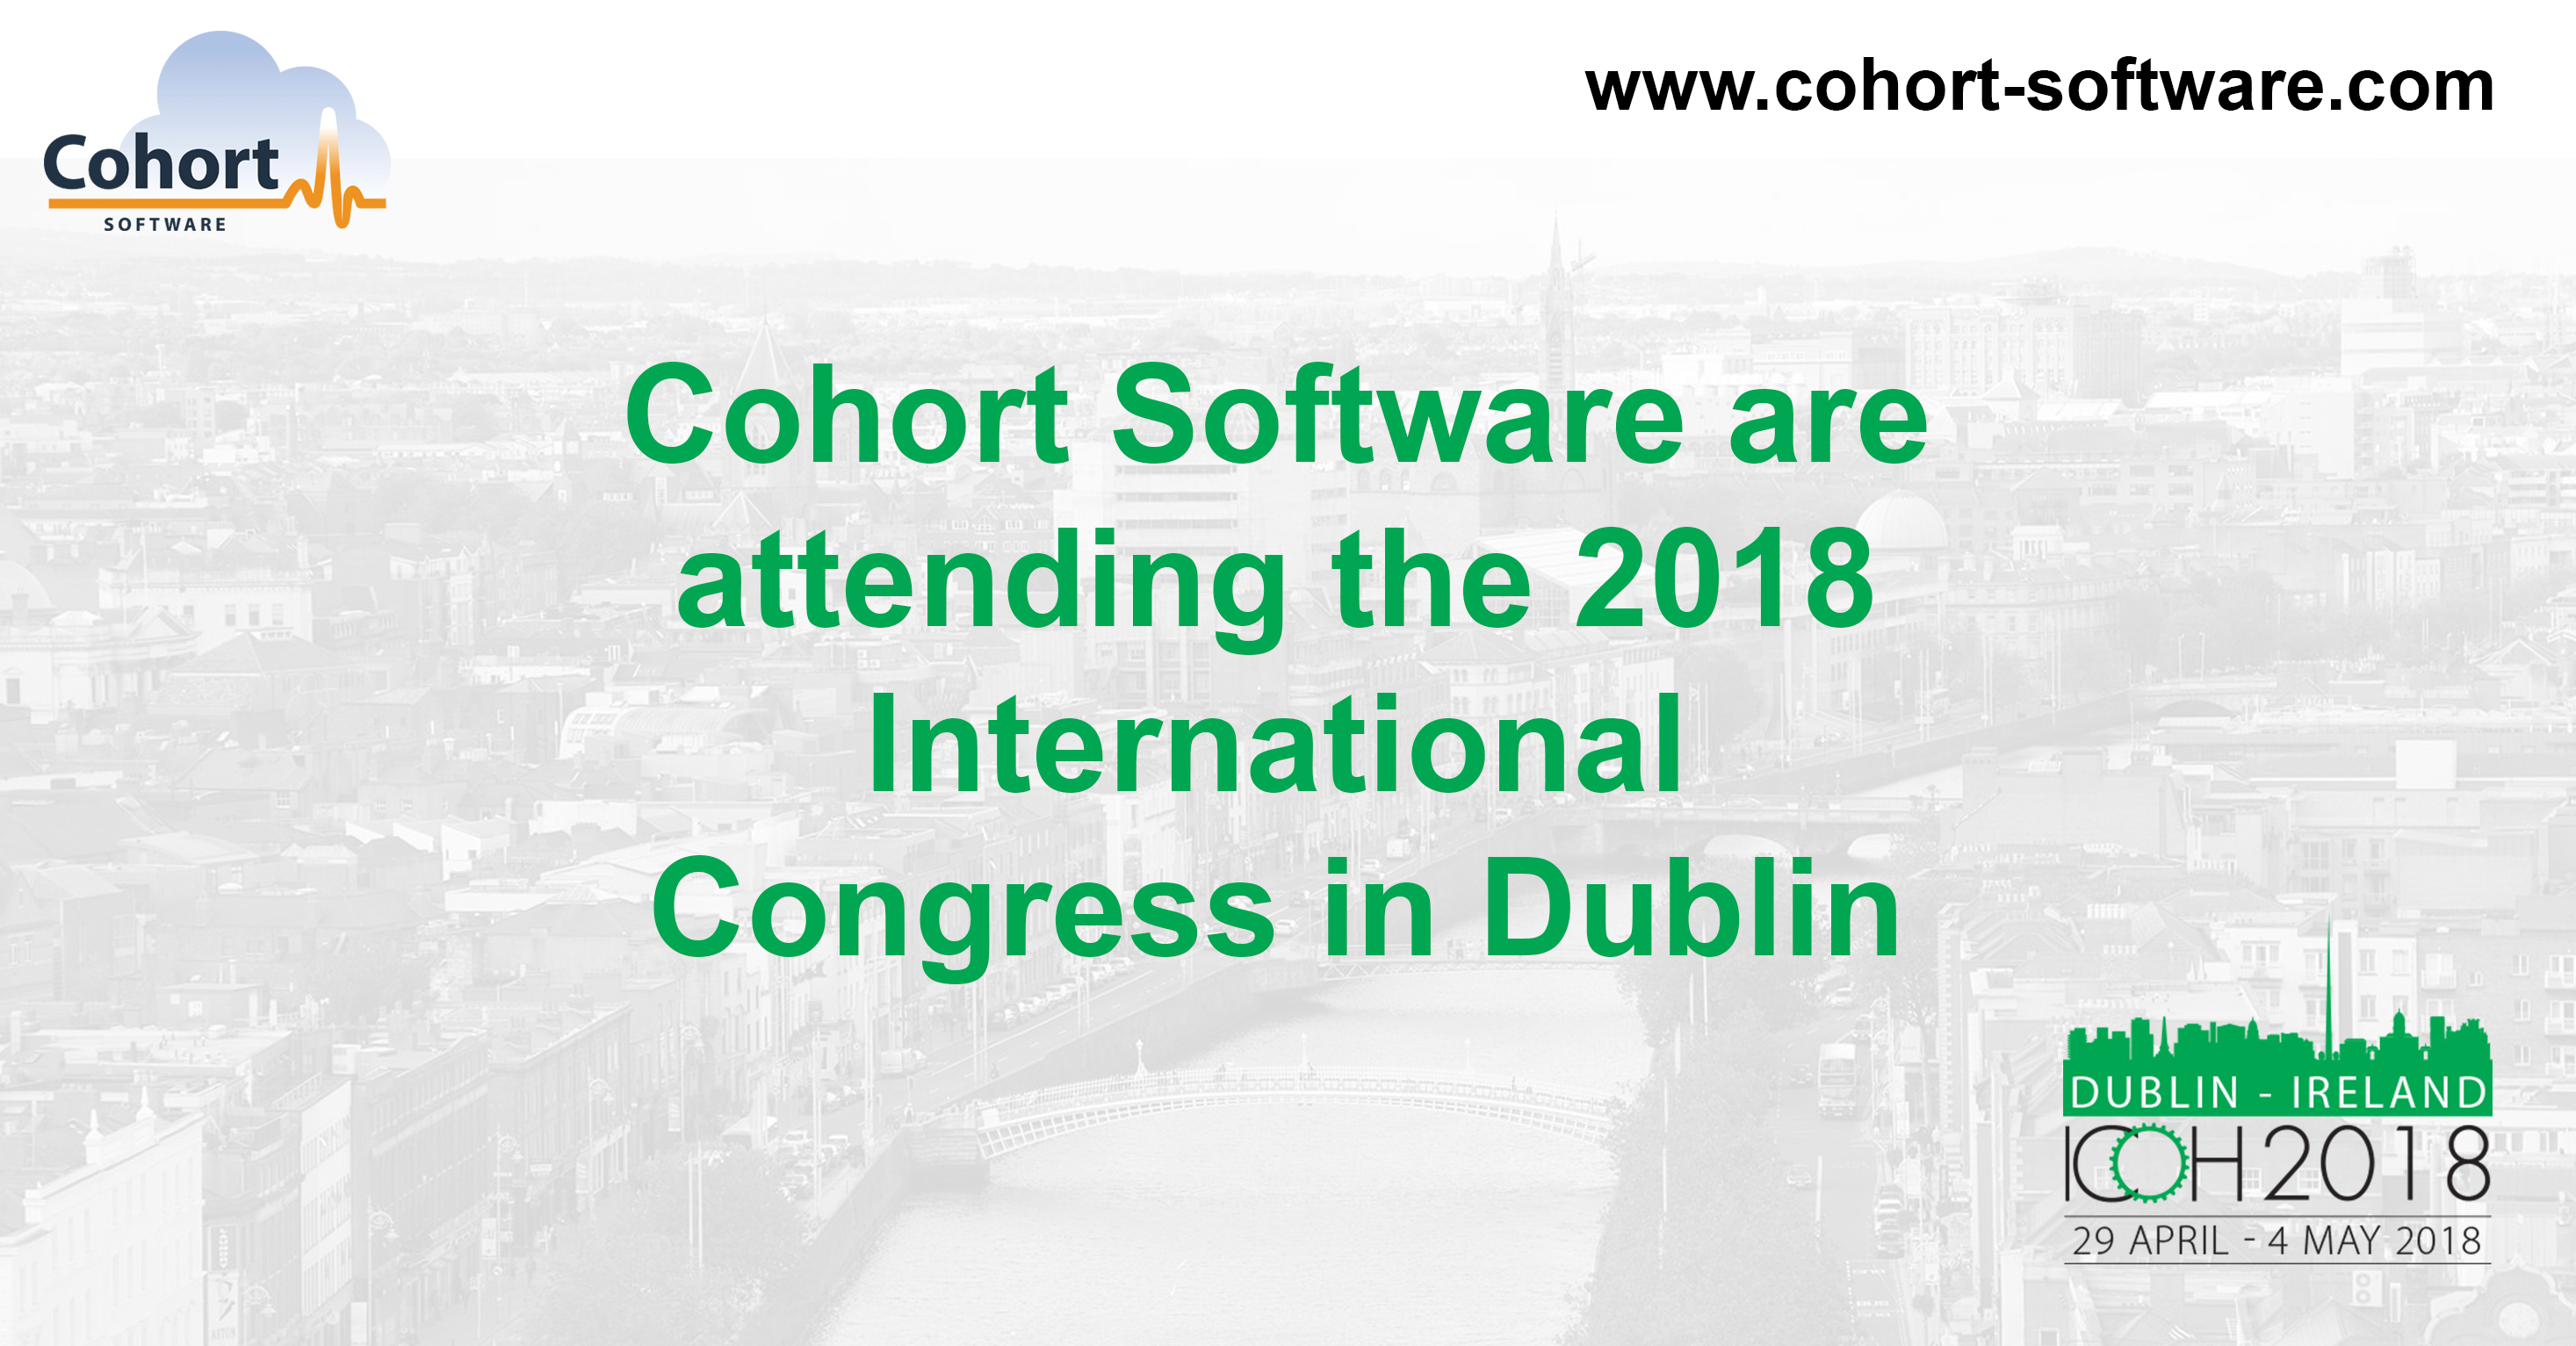 Cohort Software to attend the ICOH International Congress in Dublin